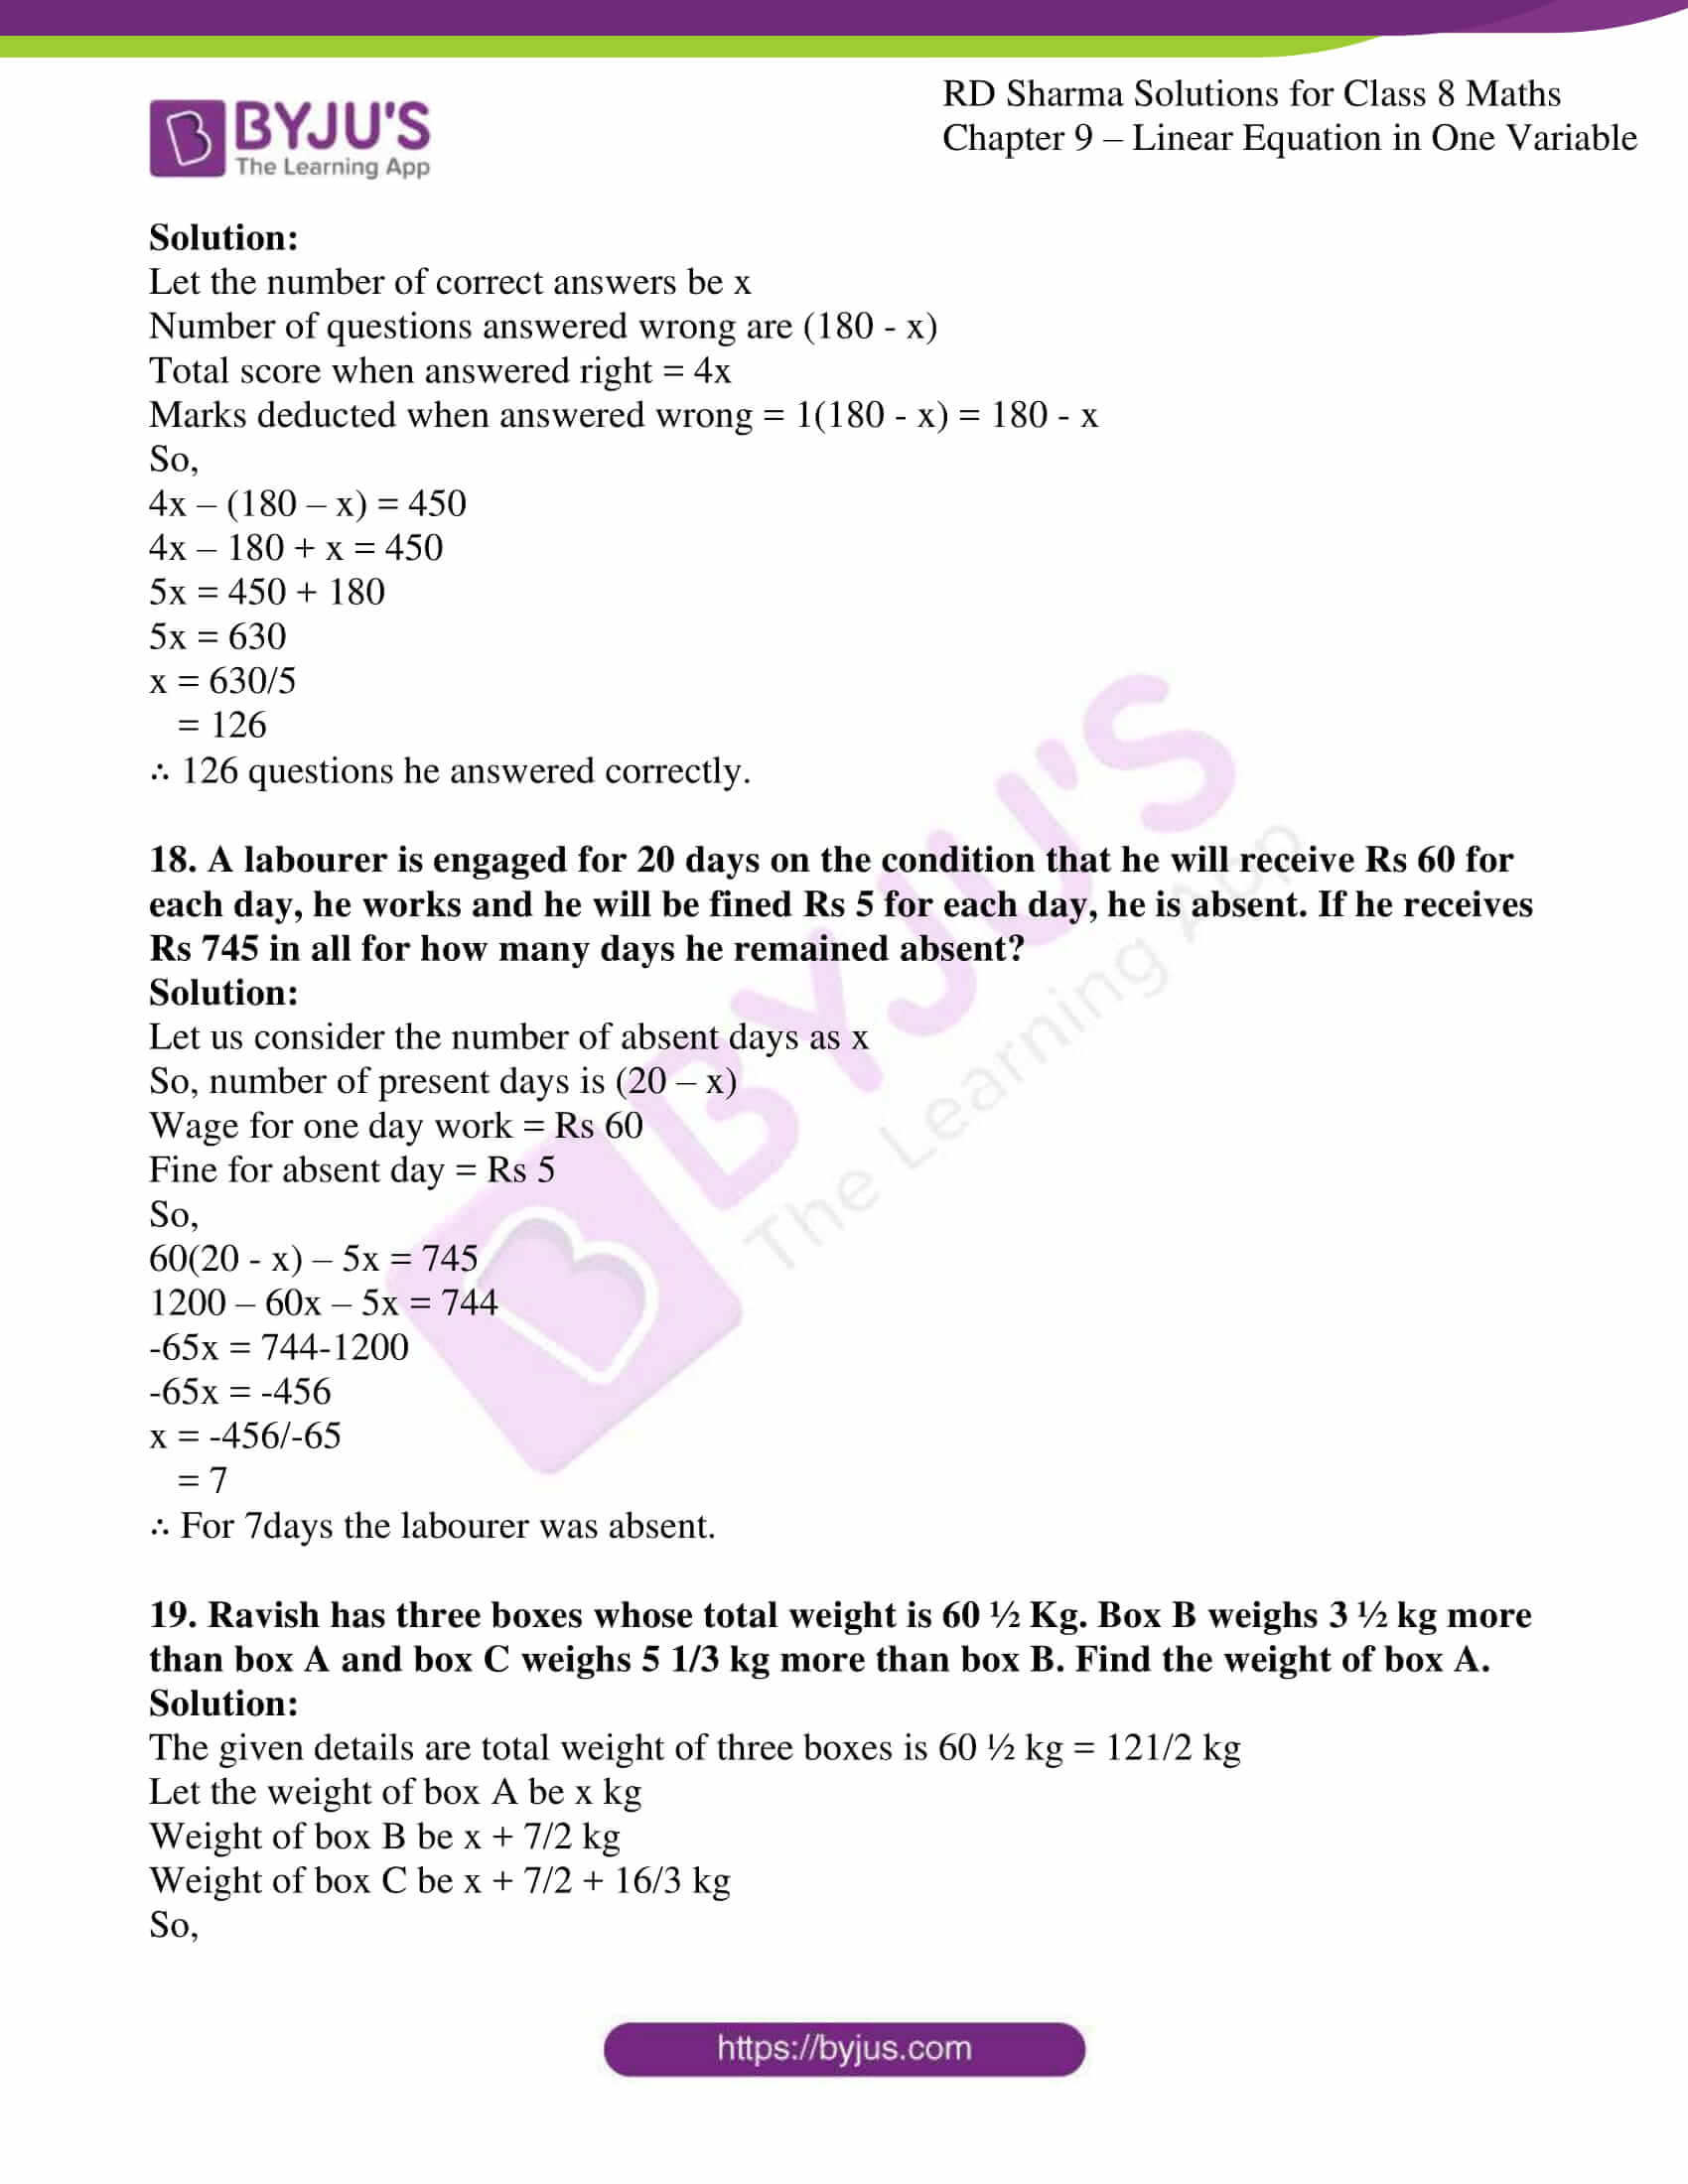 rd sharma class 8 maths chapter 9